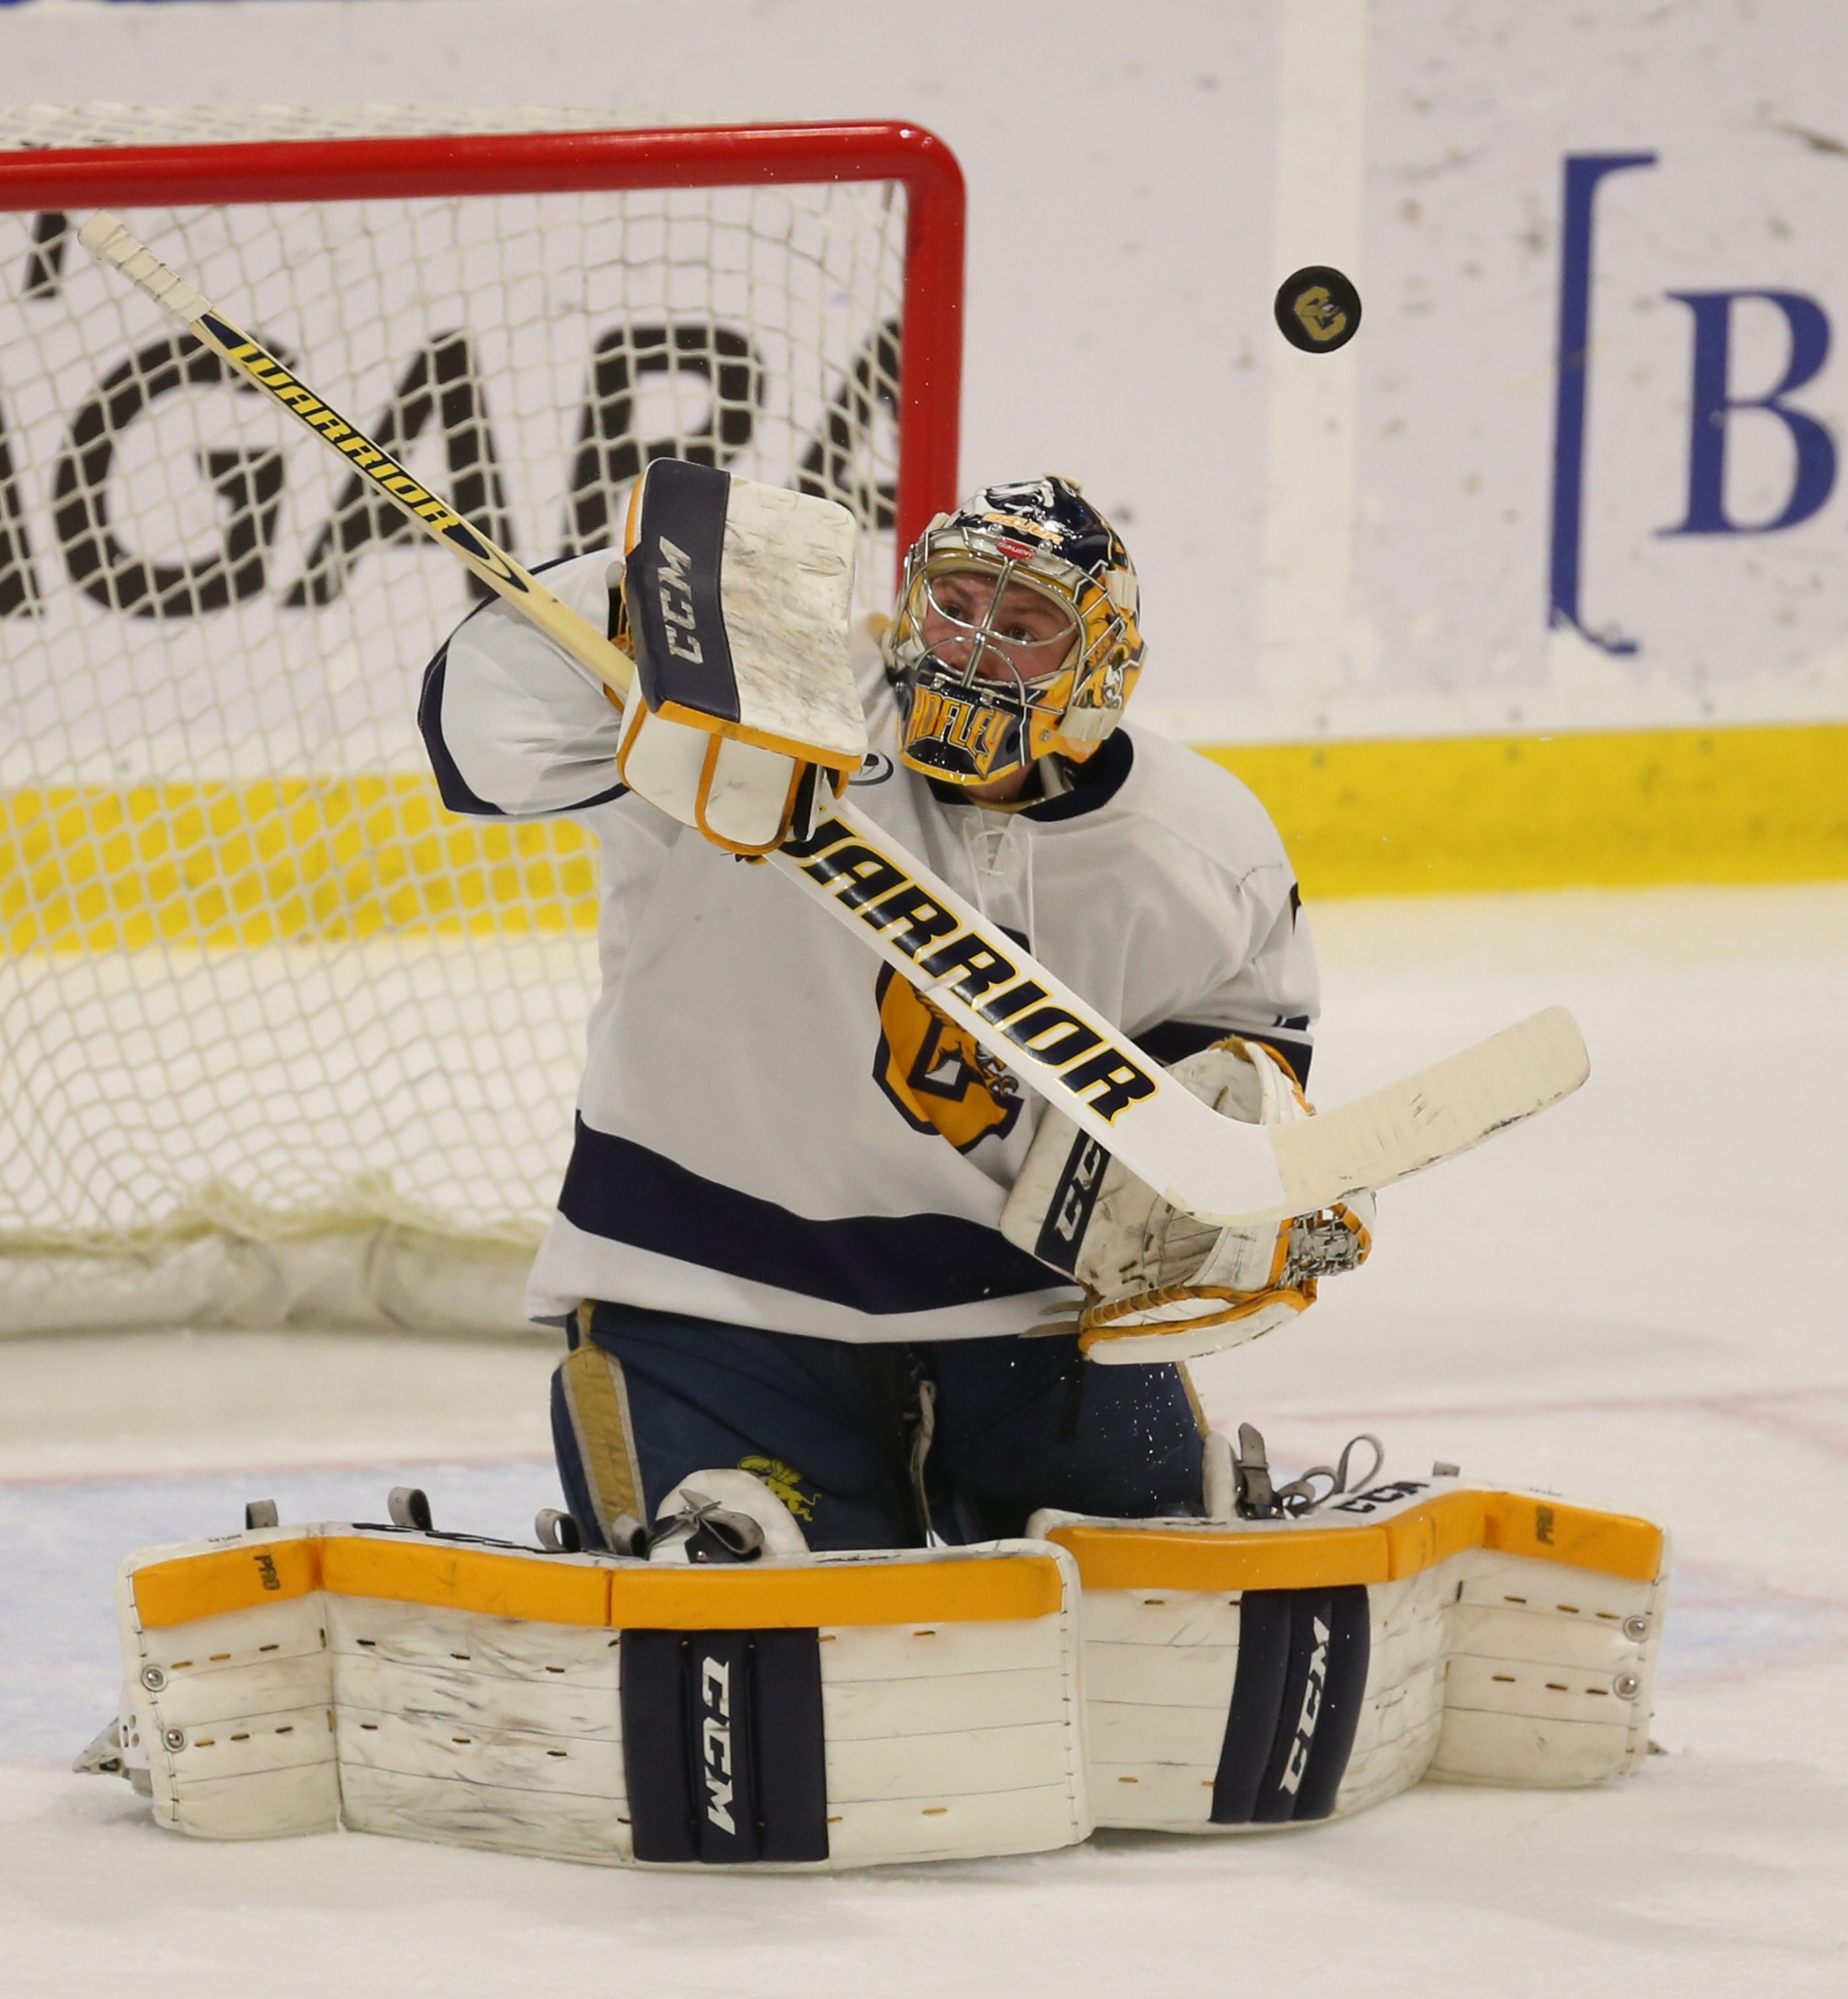 Canisius' Simon Hofley makes save in the first period at HARBORCENTER in Buffalo, NY on Friday, Nov. 20, 2015.  (James P. McCoy/ Buffalo News)